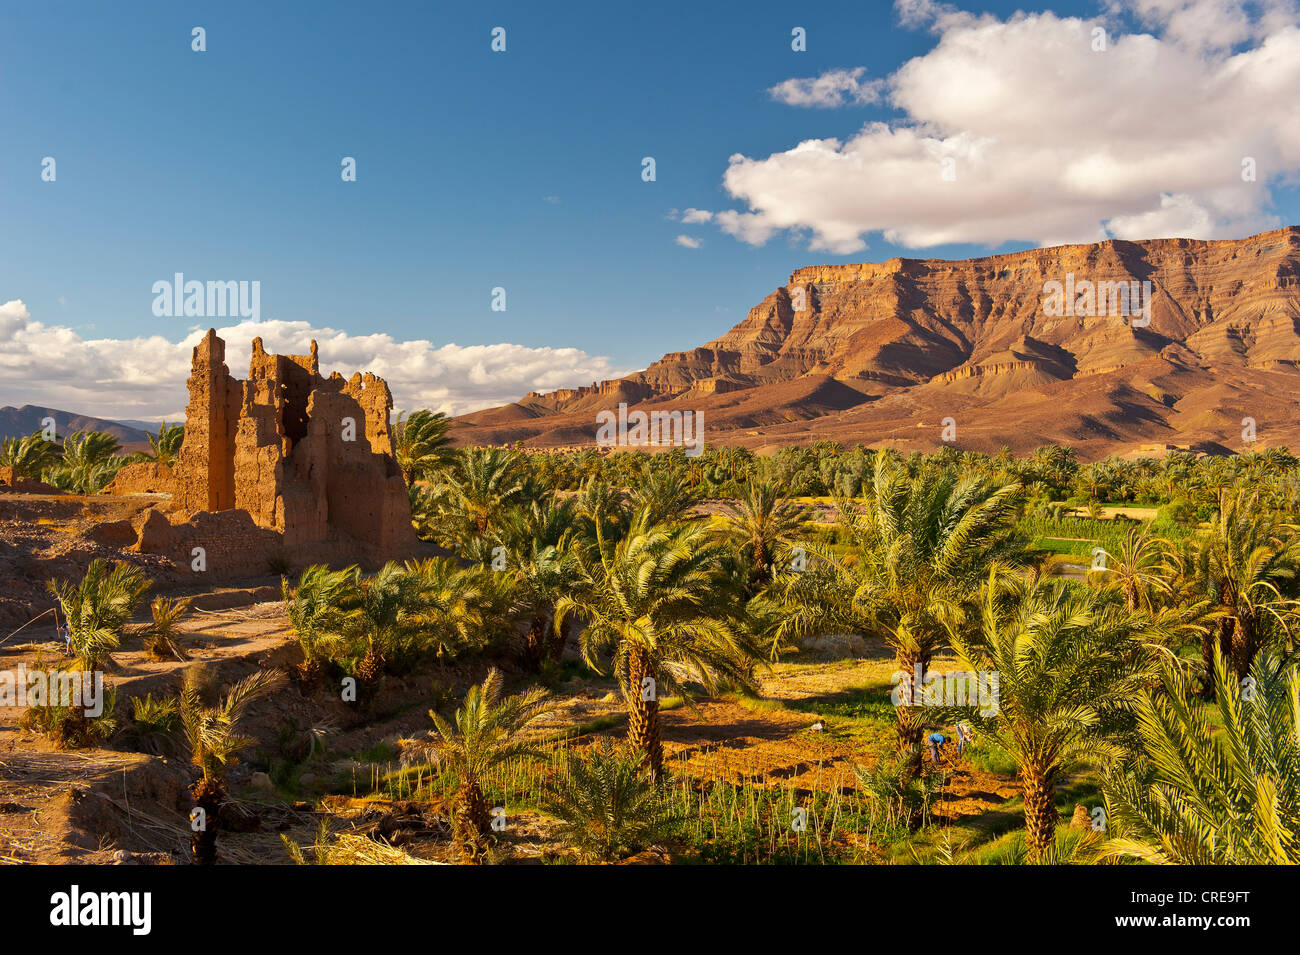 Ruined Kasbah, a former Berbers' residential castle built of adobe, and palm grove in front of the mountain - Stock Image